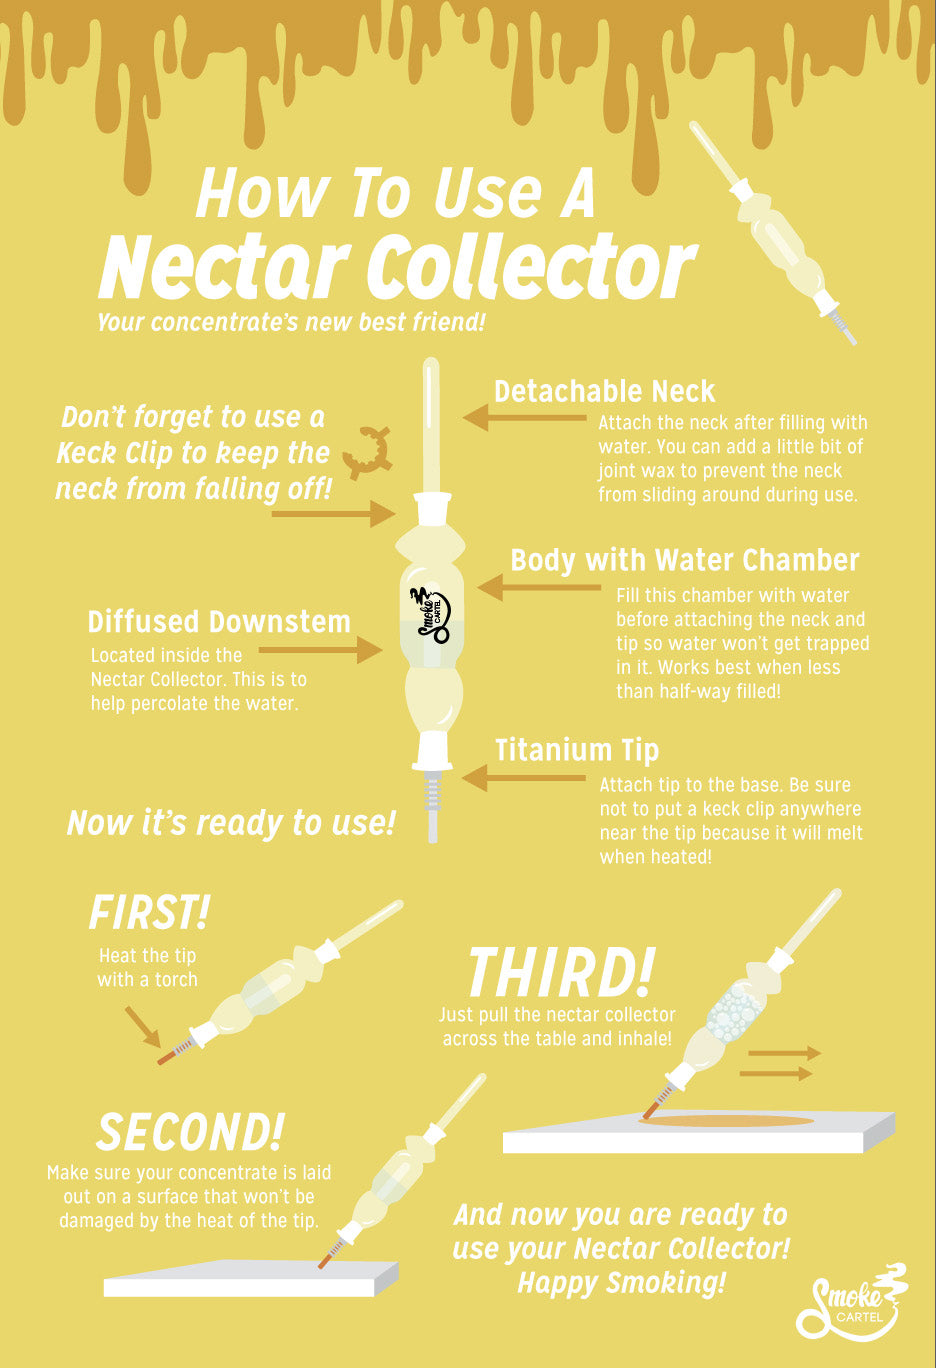 How to Use a Nectar Collector - Infographic